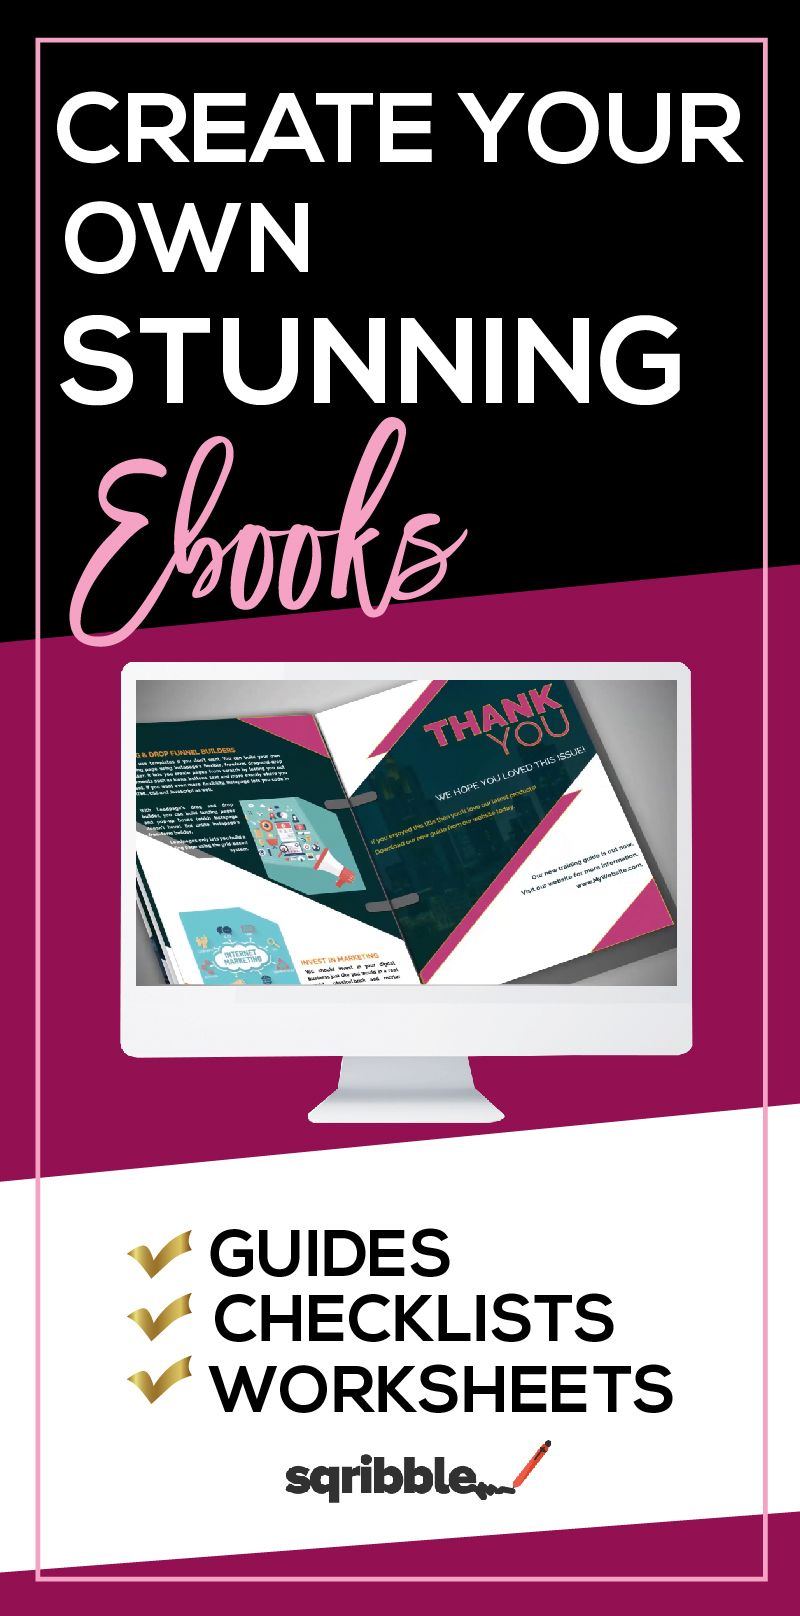 Want to know how to DIY an ebook for your online business